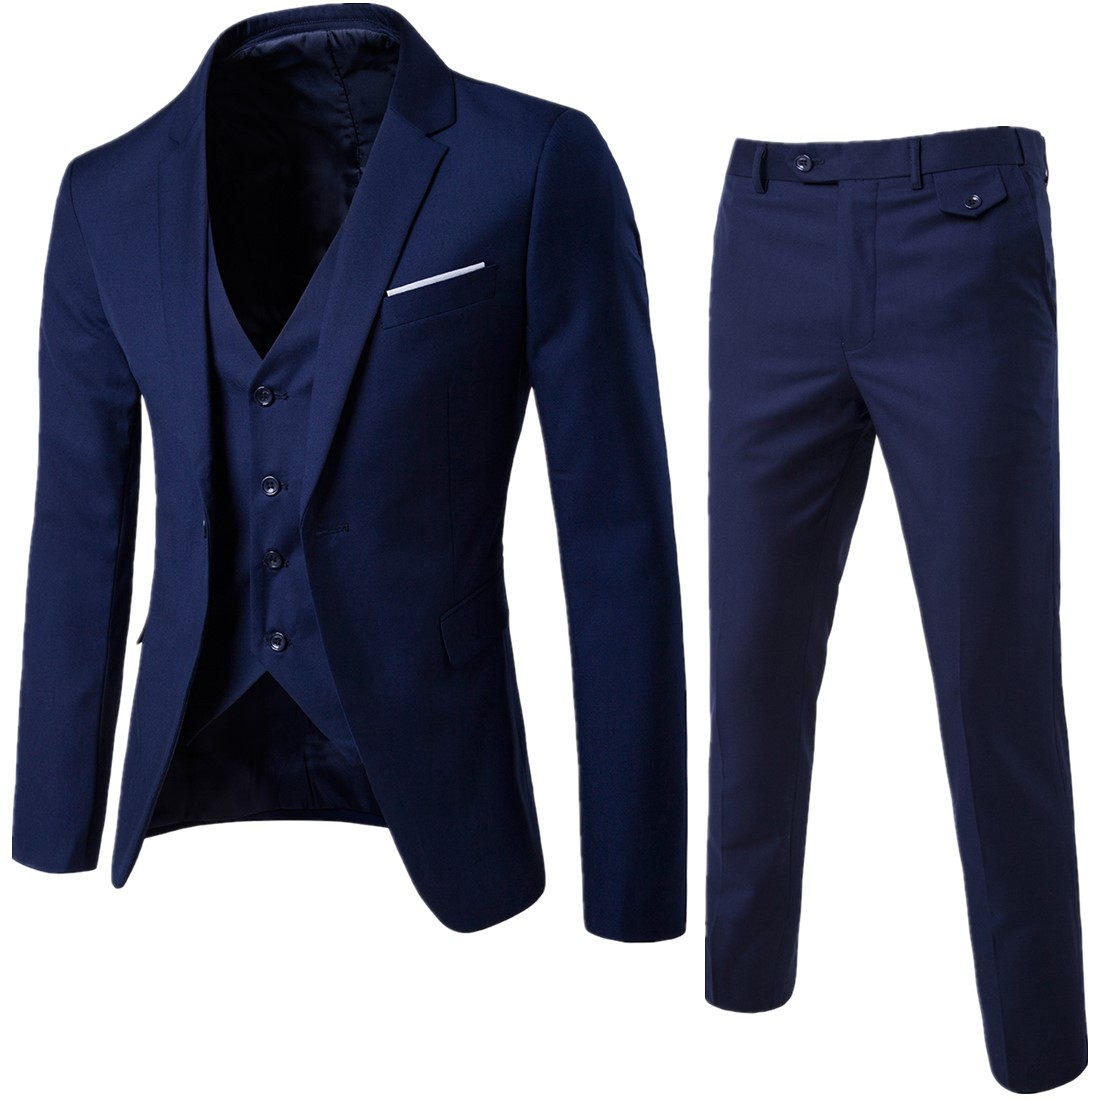 Autumn And Winter England Men's Suit Set Suit Korean Style Trend Teenager Three-piece Set Casual Korean-style Slim Fit Fashion